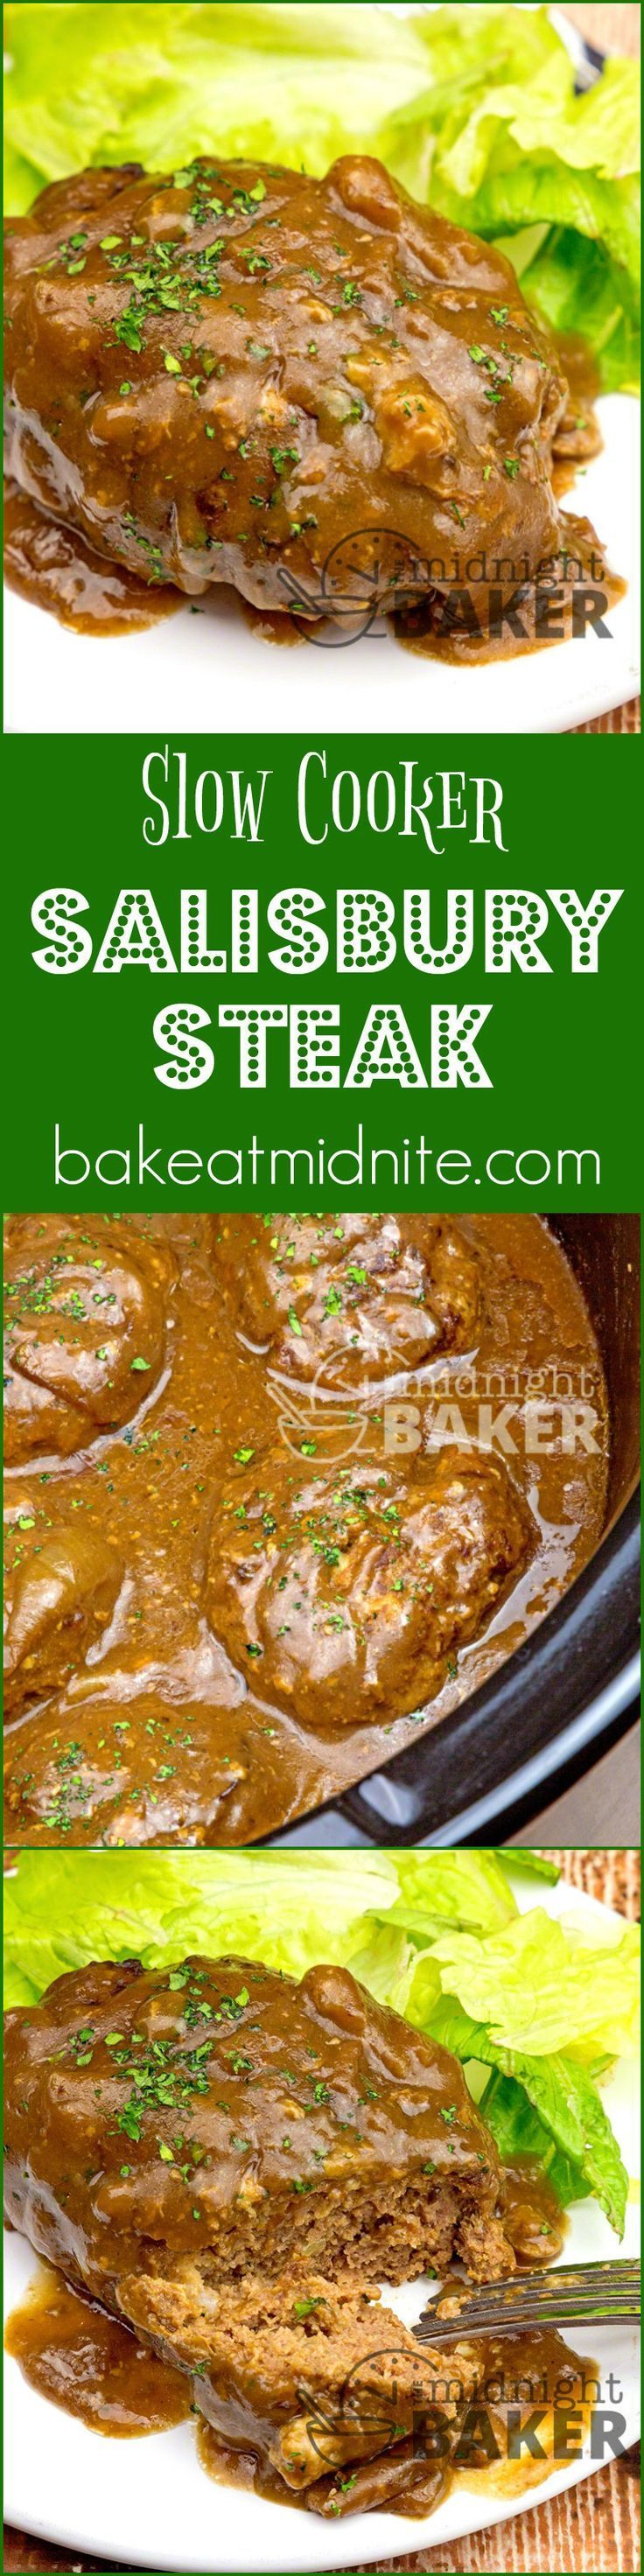 """Salisbury steak is a great American comfort food and it cooks low and slow in your crock pot. The family will love this and so will you! Salisbury Steak: Easy And Comforting When I think """"comfort food,"""" salisbury steak is always in that list. It's pretty easy to make and it's inexpensive too. Hence, it's...Read More »"""